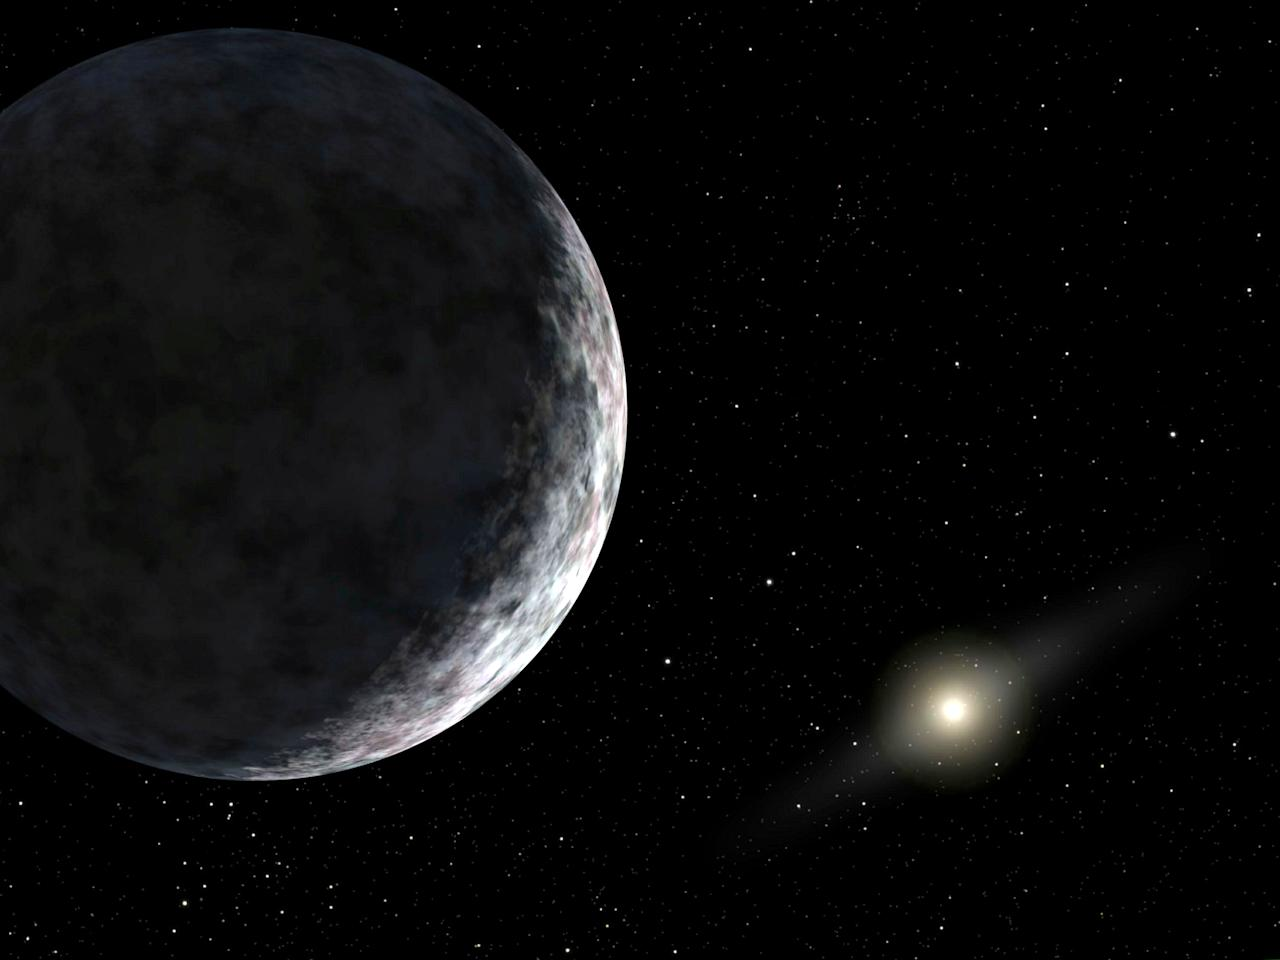 A California astronomer has discovered what he believes is the 10th planet in our solar system, a group of NASA-funded researchers said on July 29, 2005. The new planet, known as 2003UB313, has been identified as the most distant object ever detected orbiting the sun, California Institute of Technology astronomer Michael Brown said. This artist's concept shows planet 2003UB313 at the lonely outer fringes of our solar system. Our sun can be seen in the distance. The new planet, which is yet to be formally named, is at least as big as Pluto and about three times farther away from the Sun than Pluto. The planet was discovered by the Samuel Oschin Telescope at the Palomar Observatory near San Diego, Calif., on January 8, 2005. (CREDIT : REUTERS/NASA/JPL-Caltech/HO)